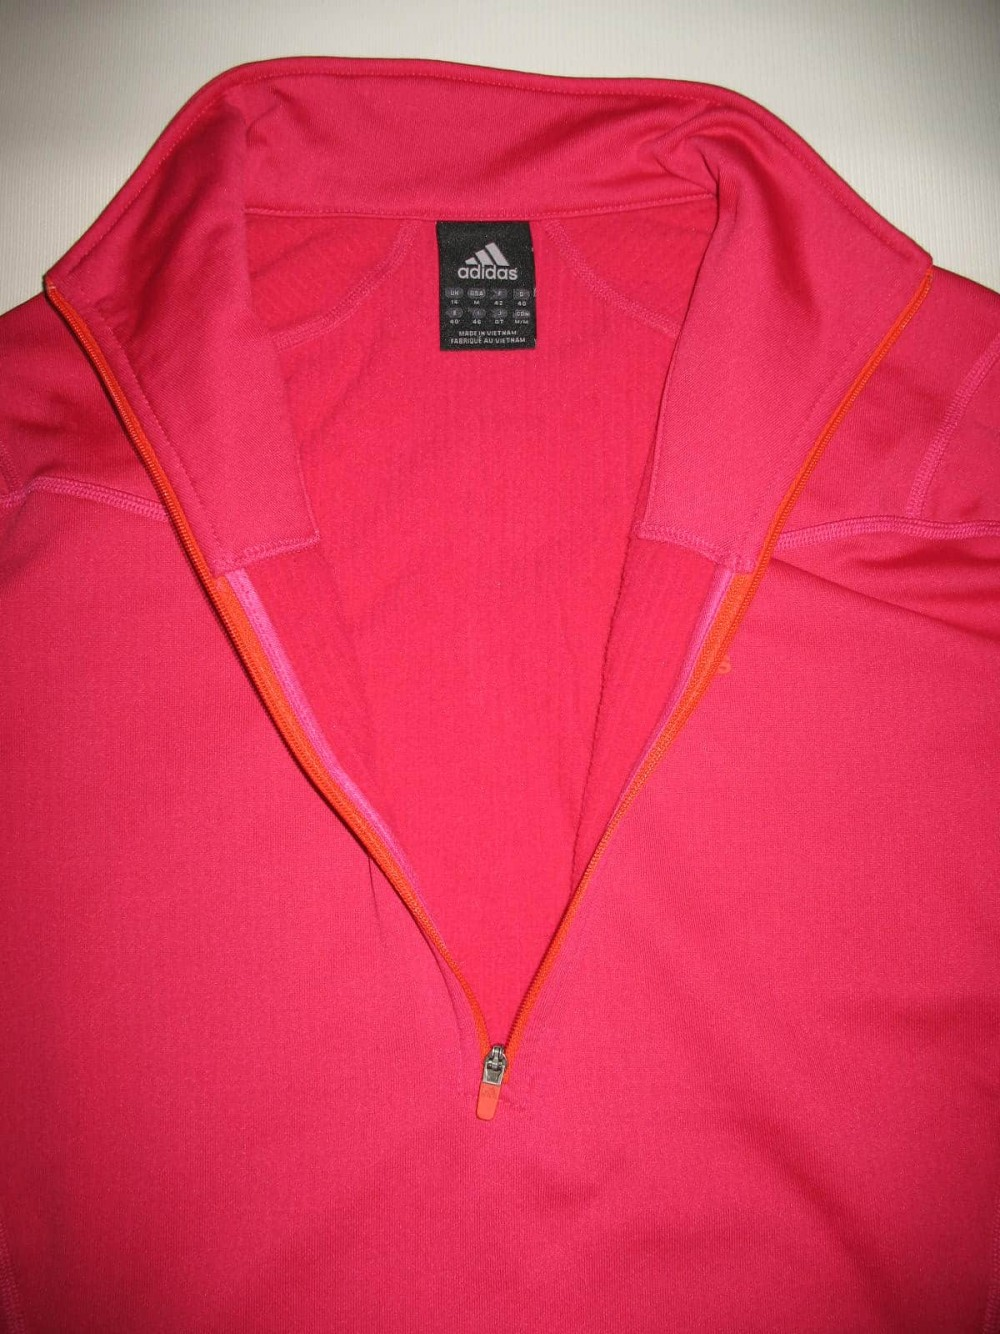 Кофта ADIDAS terrex fleece jersey lady (размер M/L) - 2